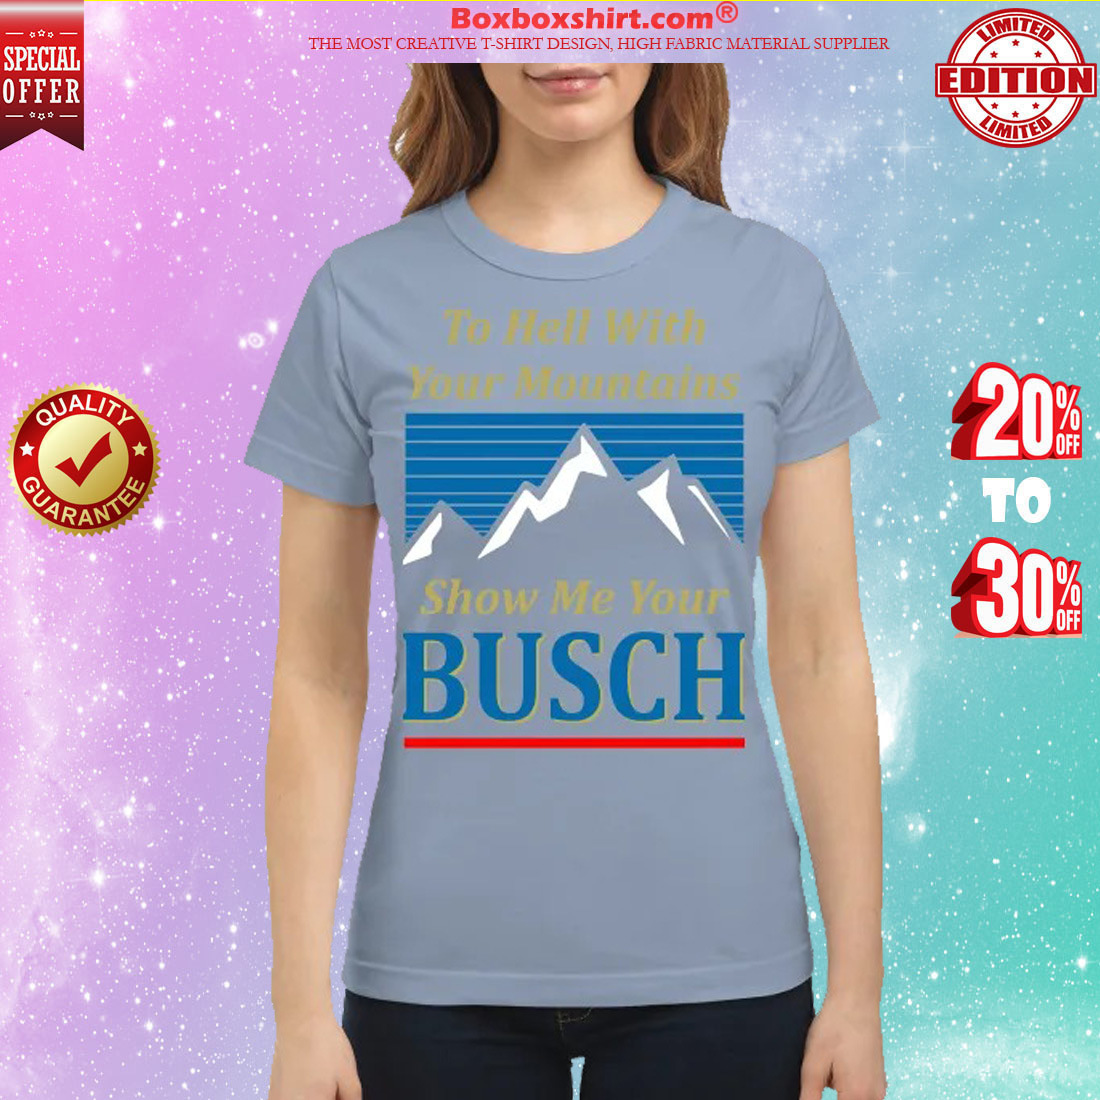 To hell with your mountains show me your buschh classic shirt